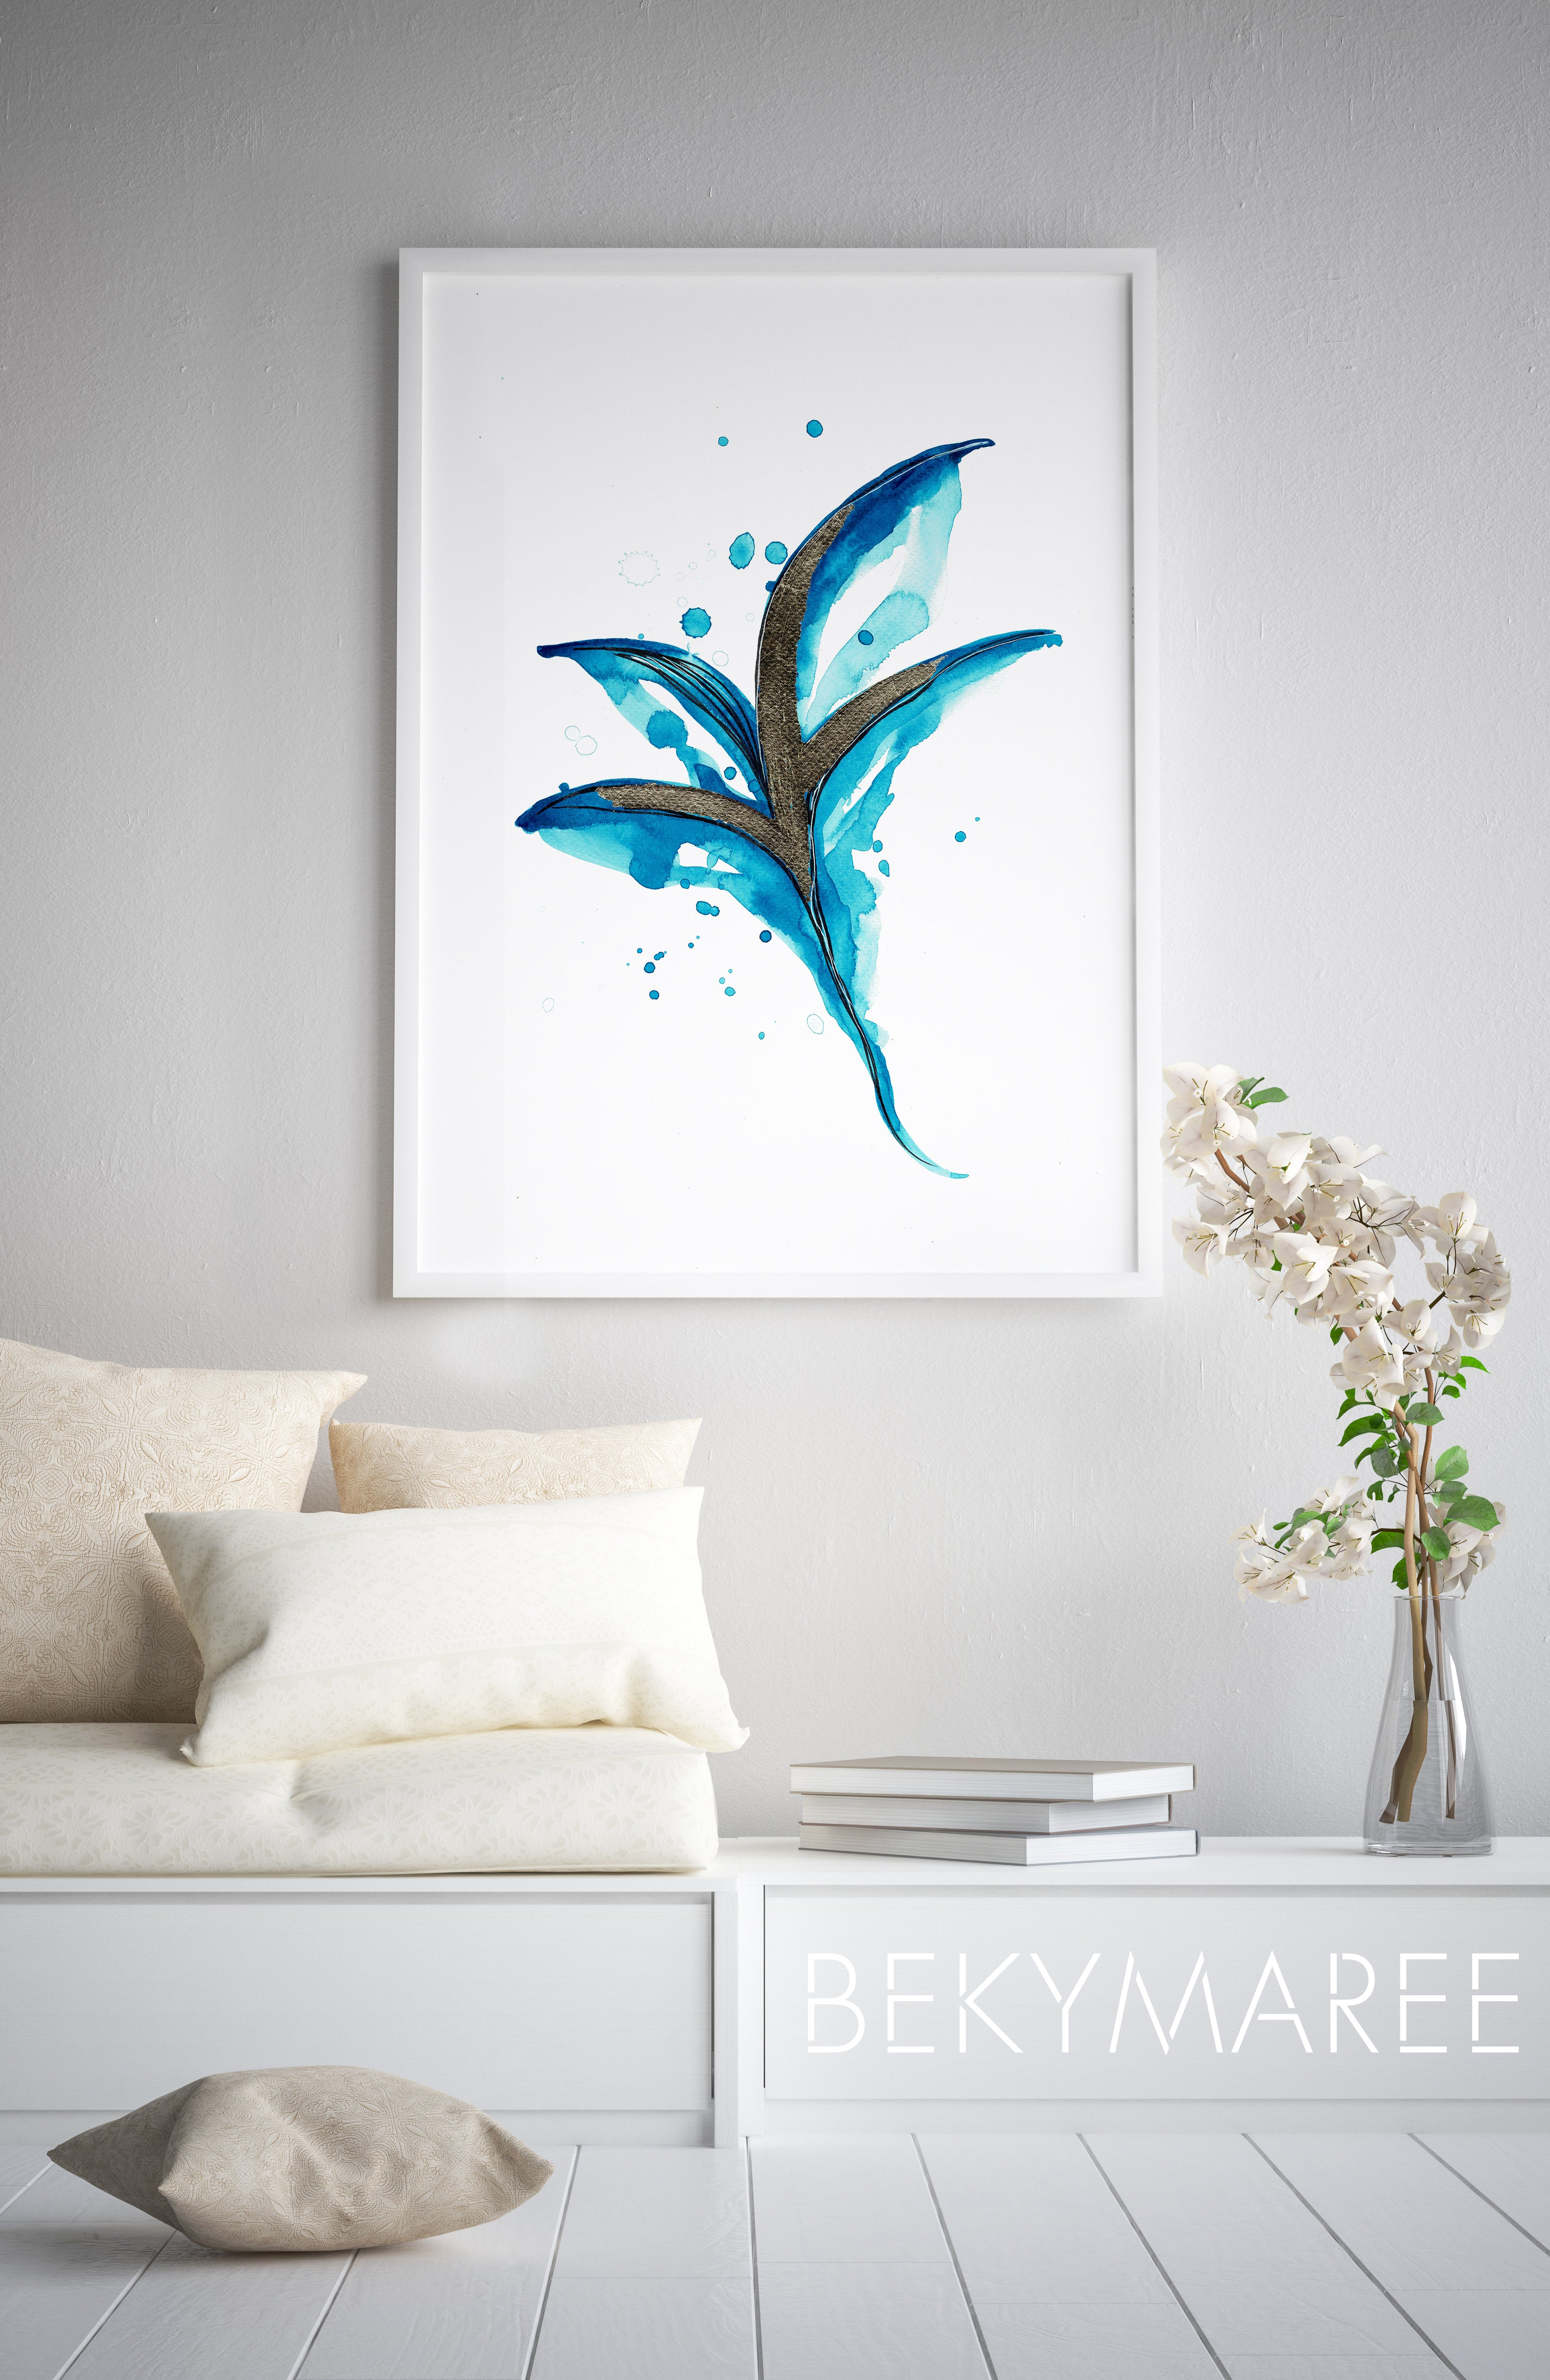 Original Turquoise Foliage with Gold Foil - Bekymaree